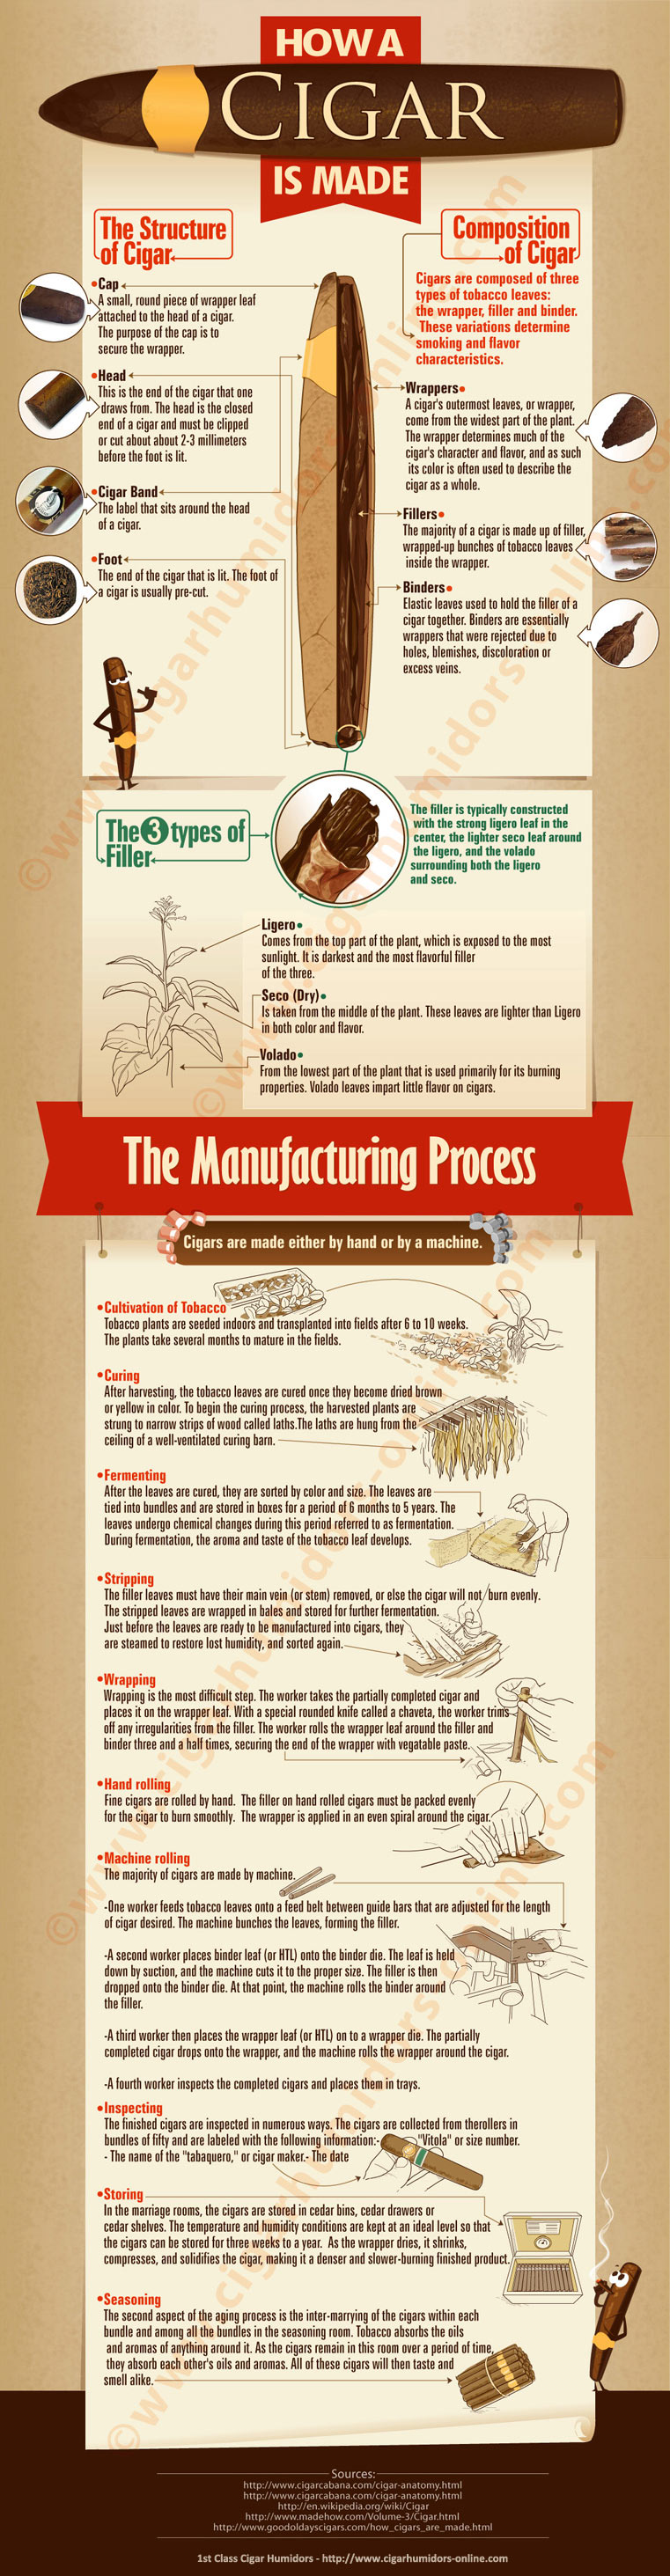 how-to-make-a-cigar-infographic